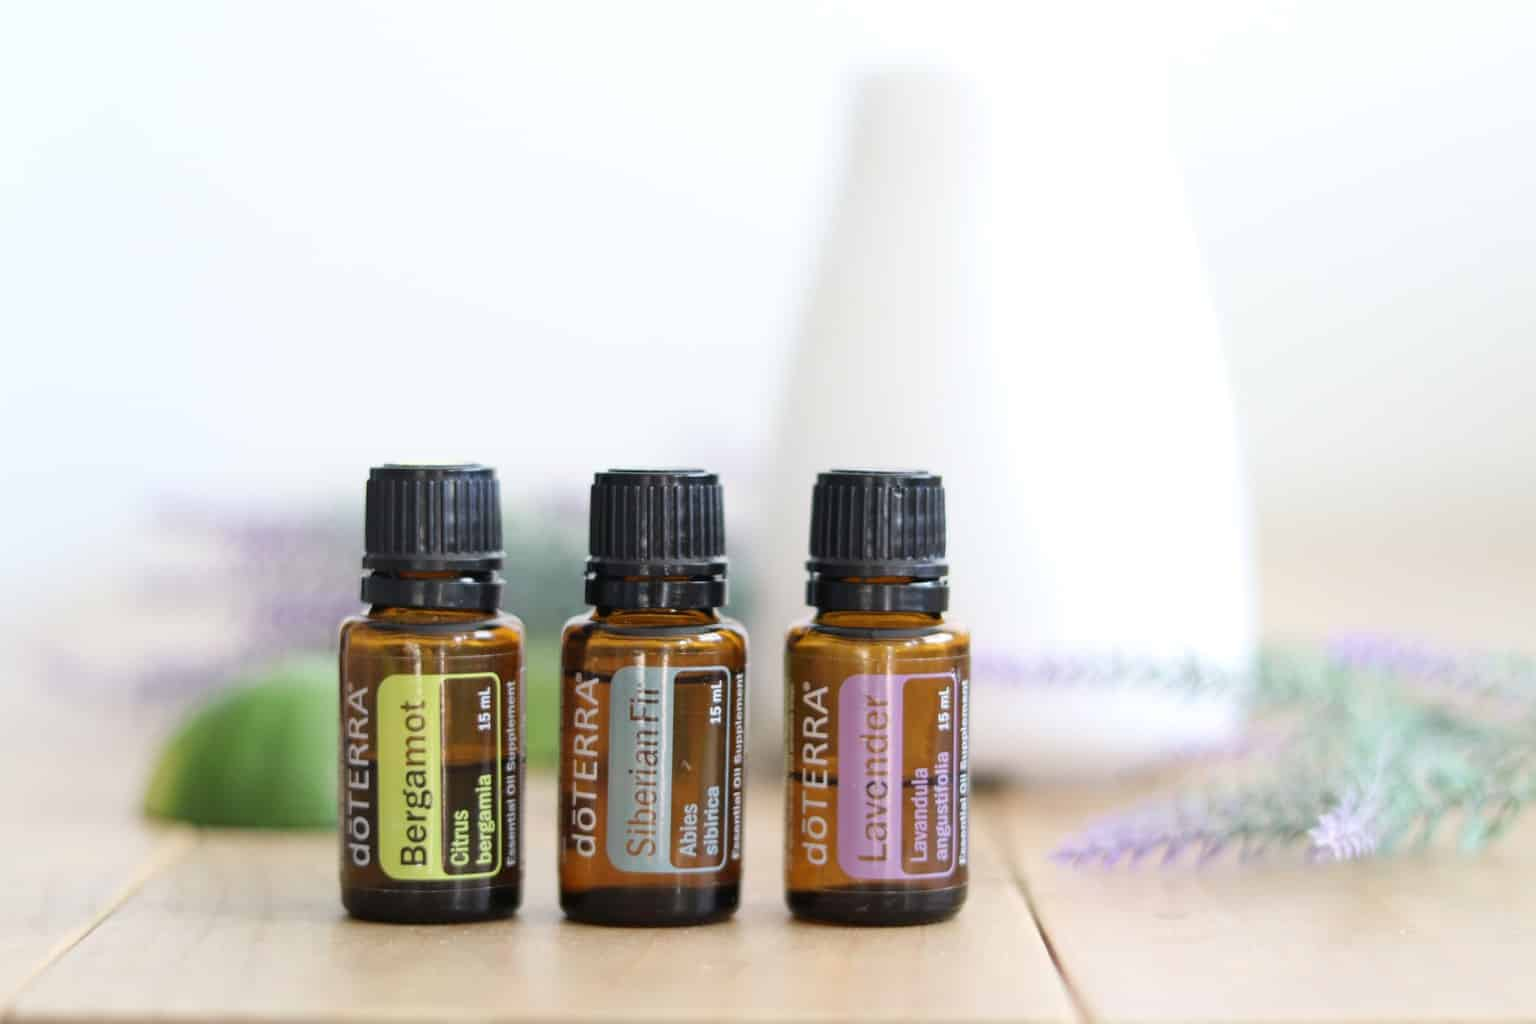 doTERRA roller bottles on table with diffuser in background.